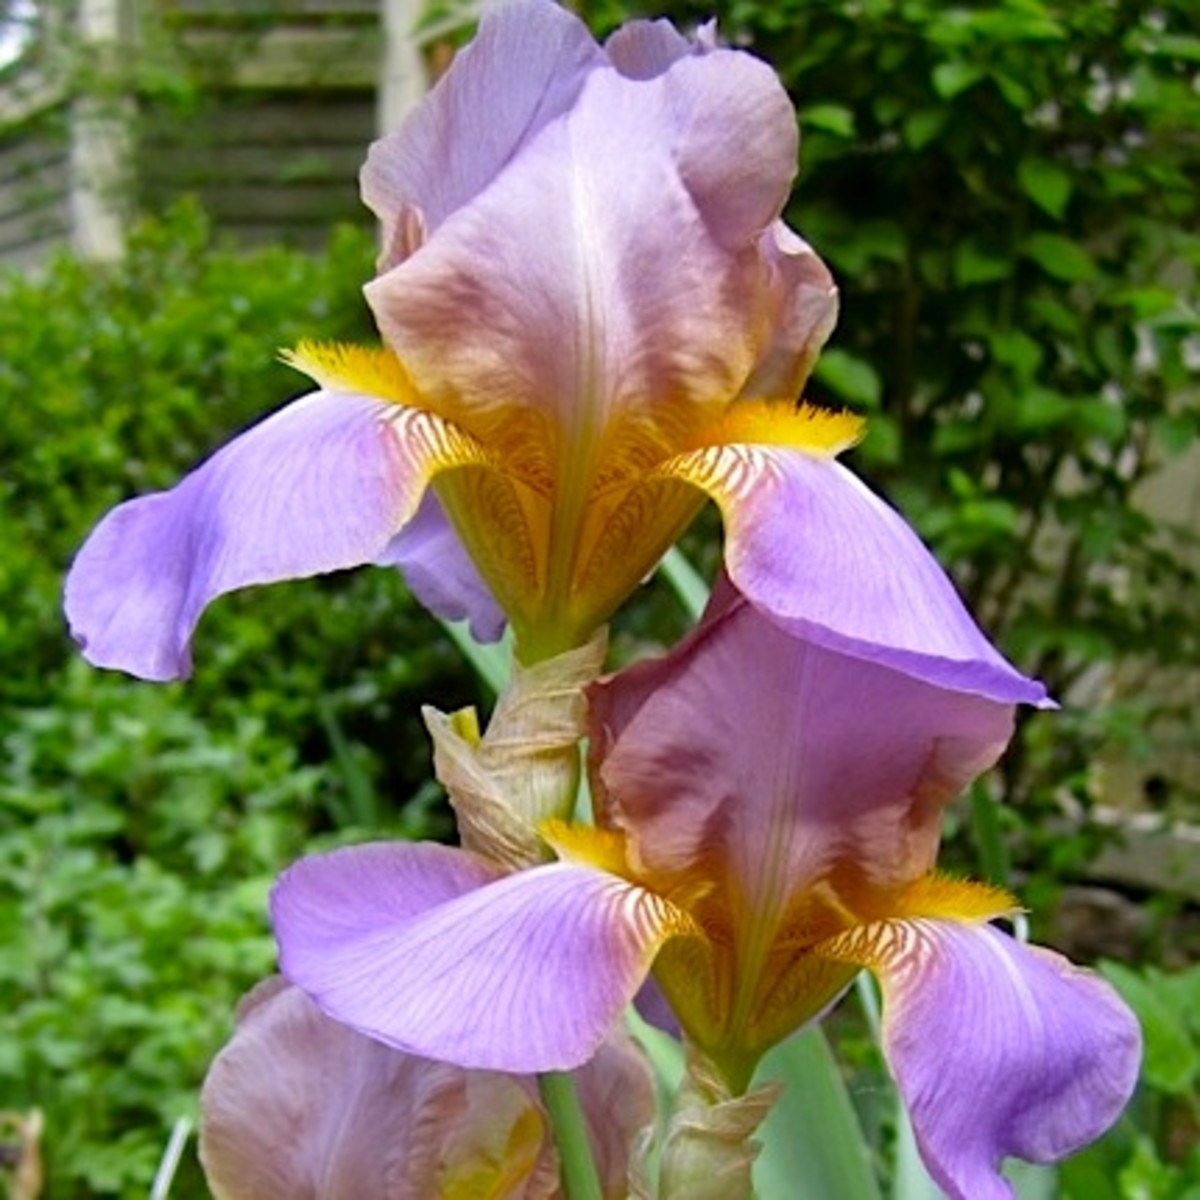 Quaker Lady: a bearded iris from 1909